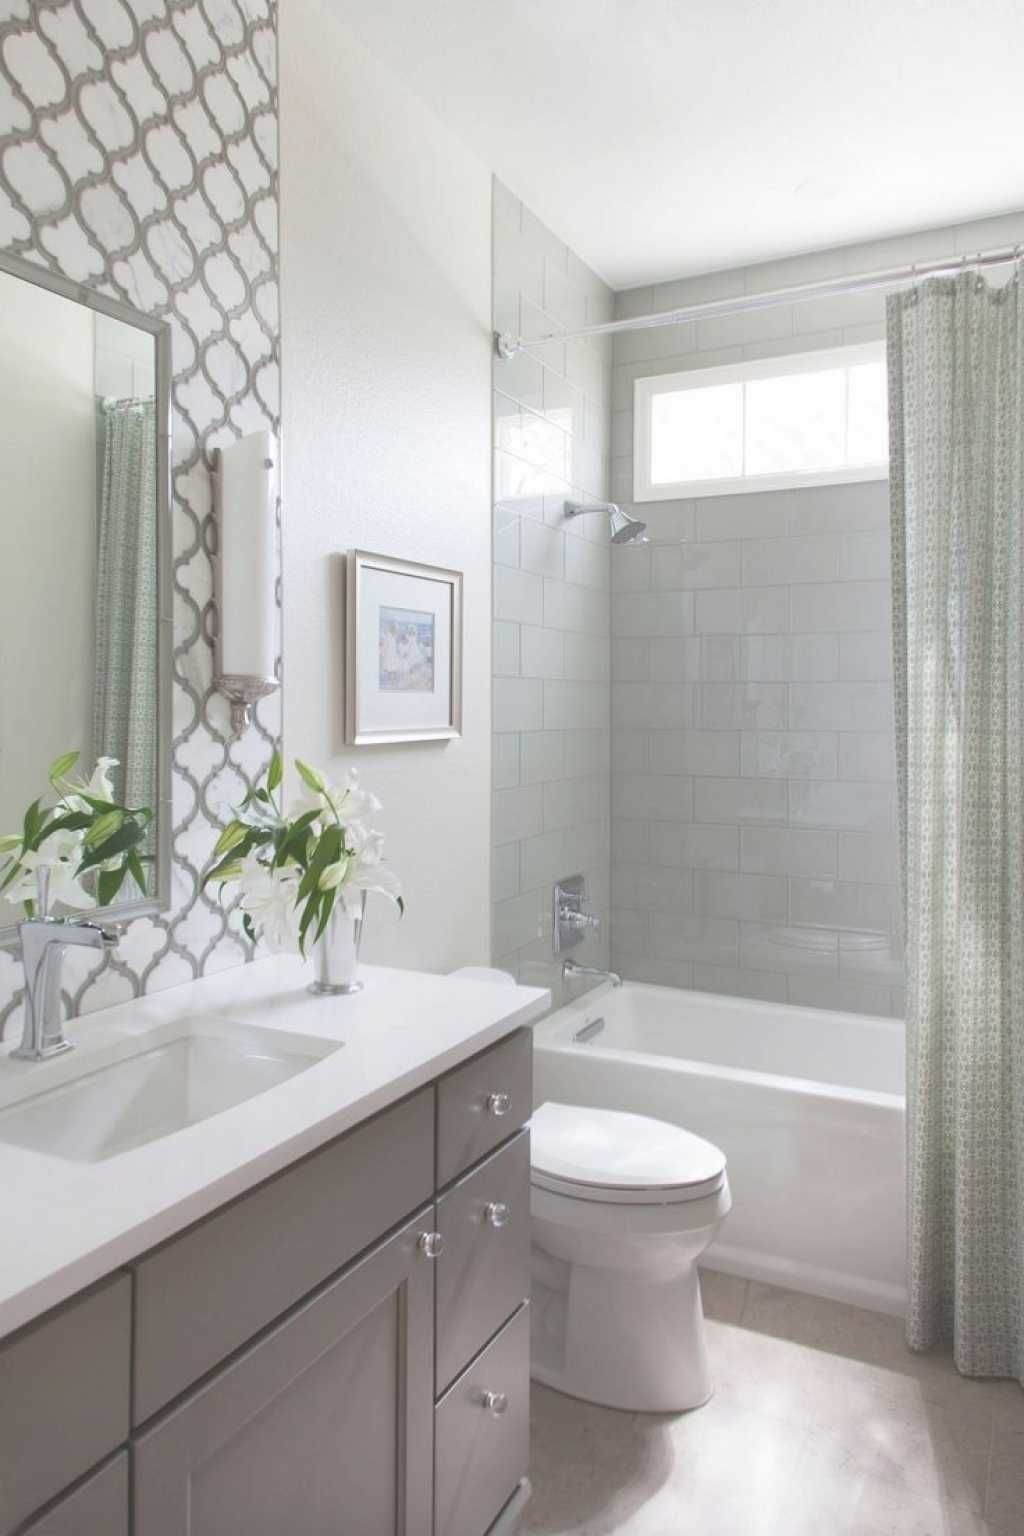 Elegant Bathroom Design Ideas For Small Bathrooms On A Budget